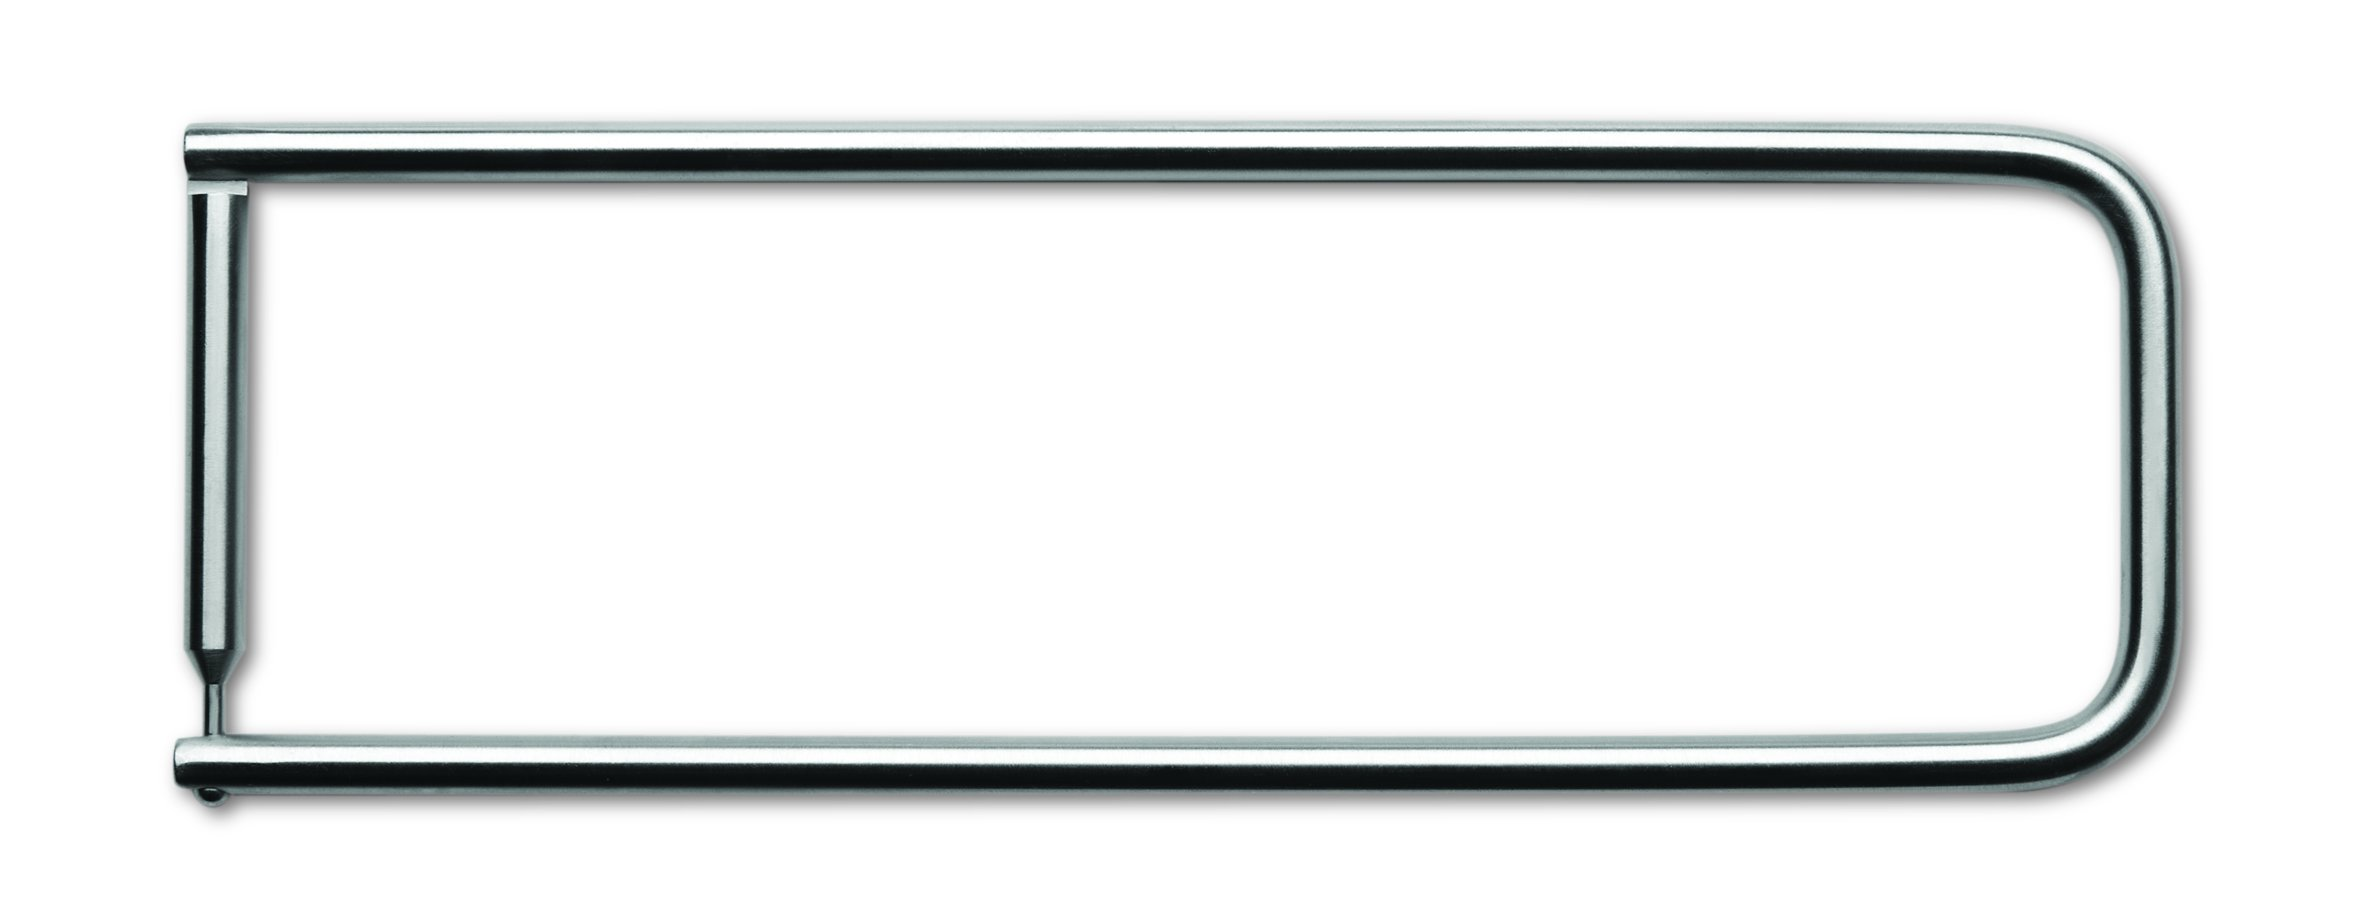 Key Surgical IS-12510 Instrument Stringer, Ball and Socket, German Stainless Steel, 10'' x 2.5''